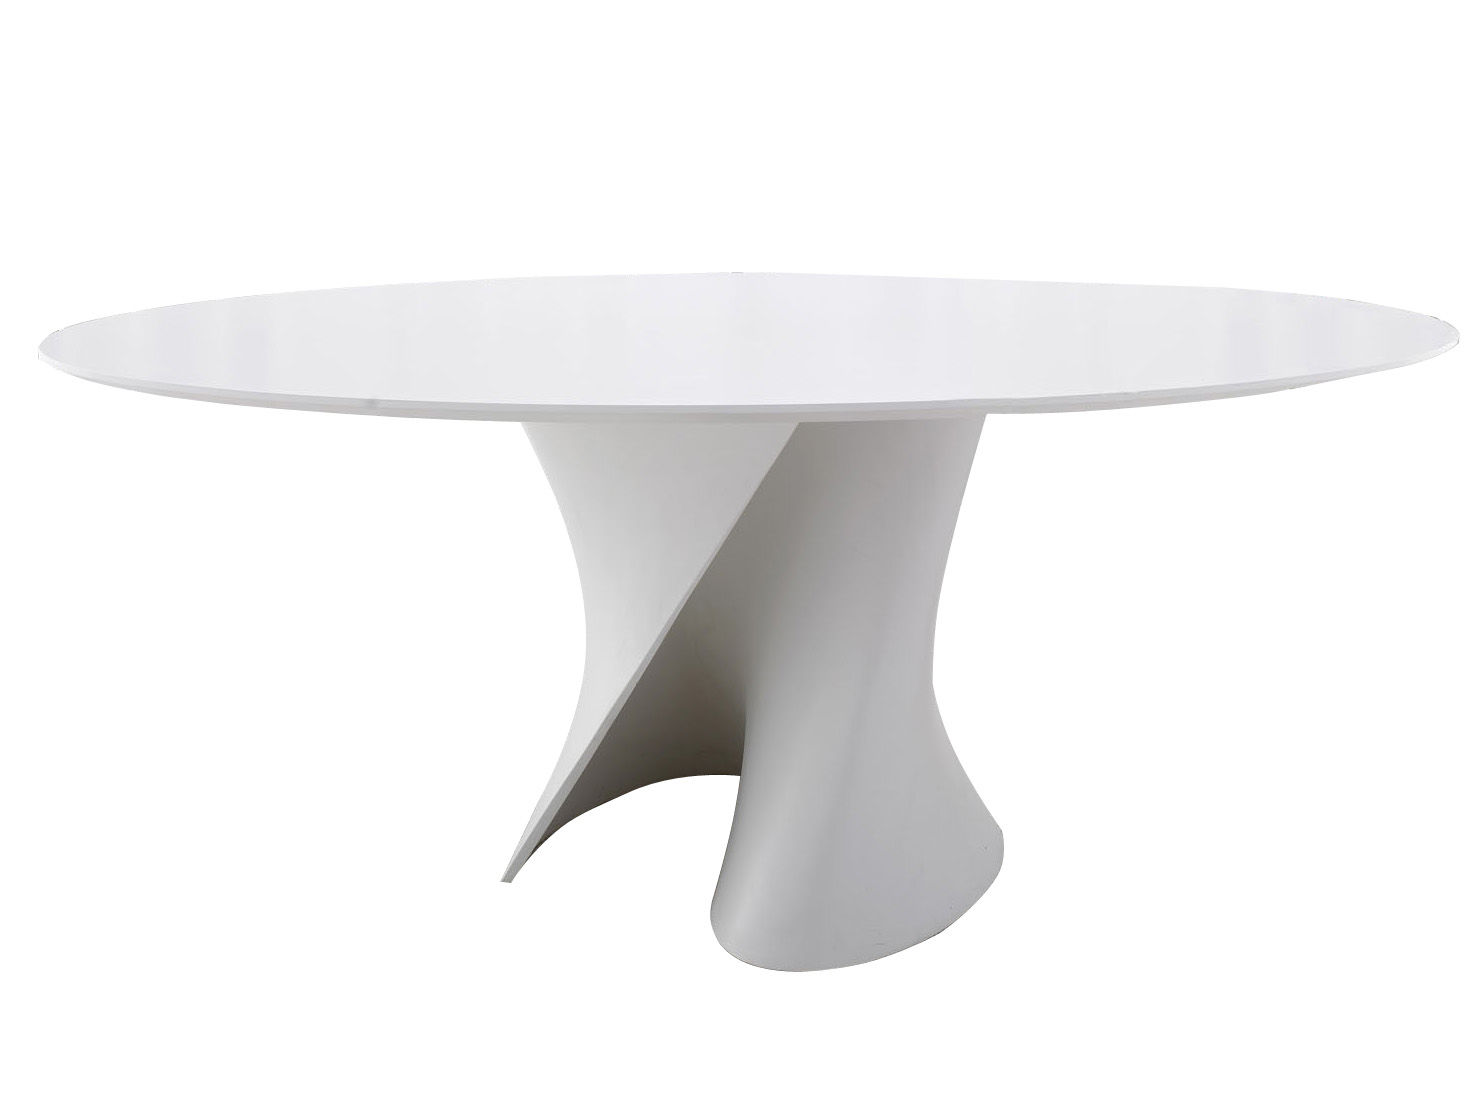 Furniture - Dining Tables - S Oval table - Oval 150 x 210 cm by MDF Italia - White resin top / White leg - Cristalplant